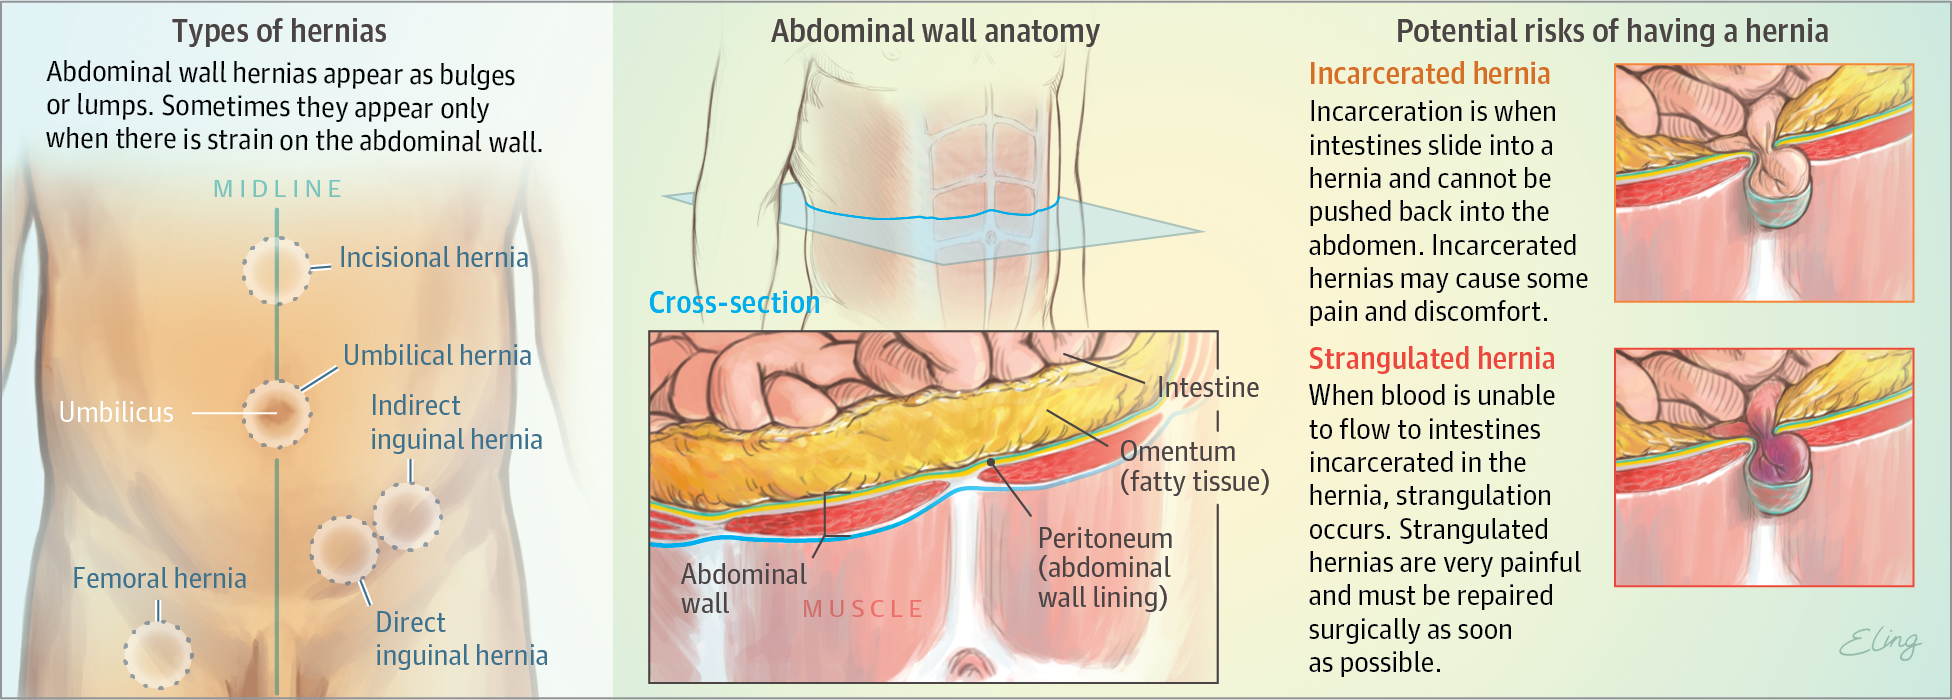 What Is An Abdominal Wall Hernia Surgery Jama Jama Network